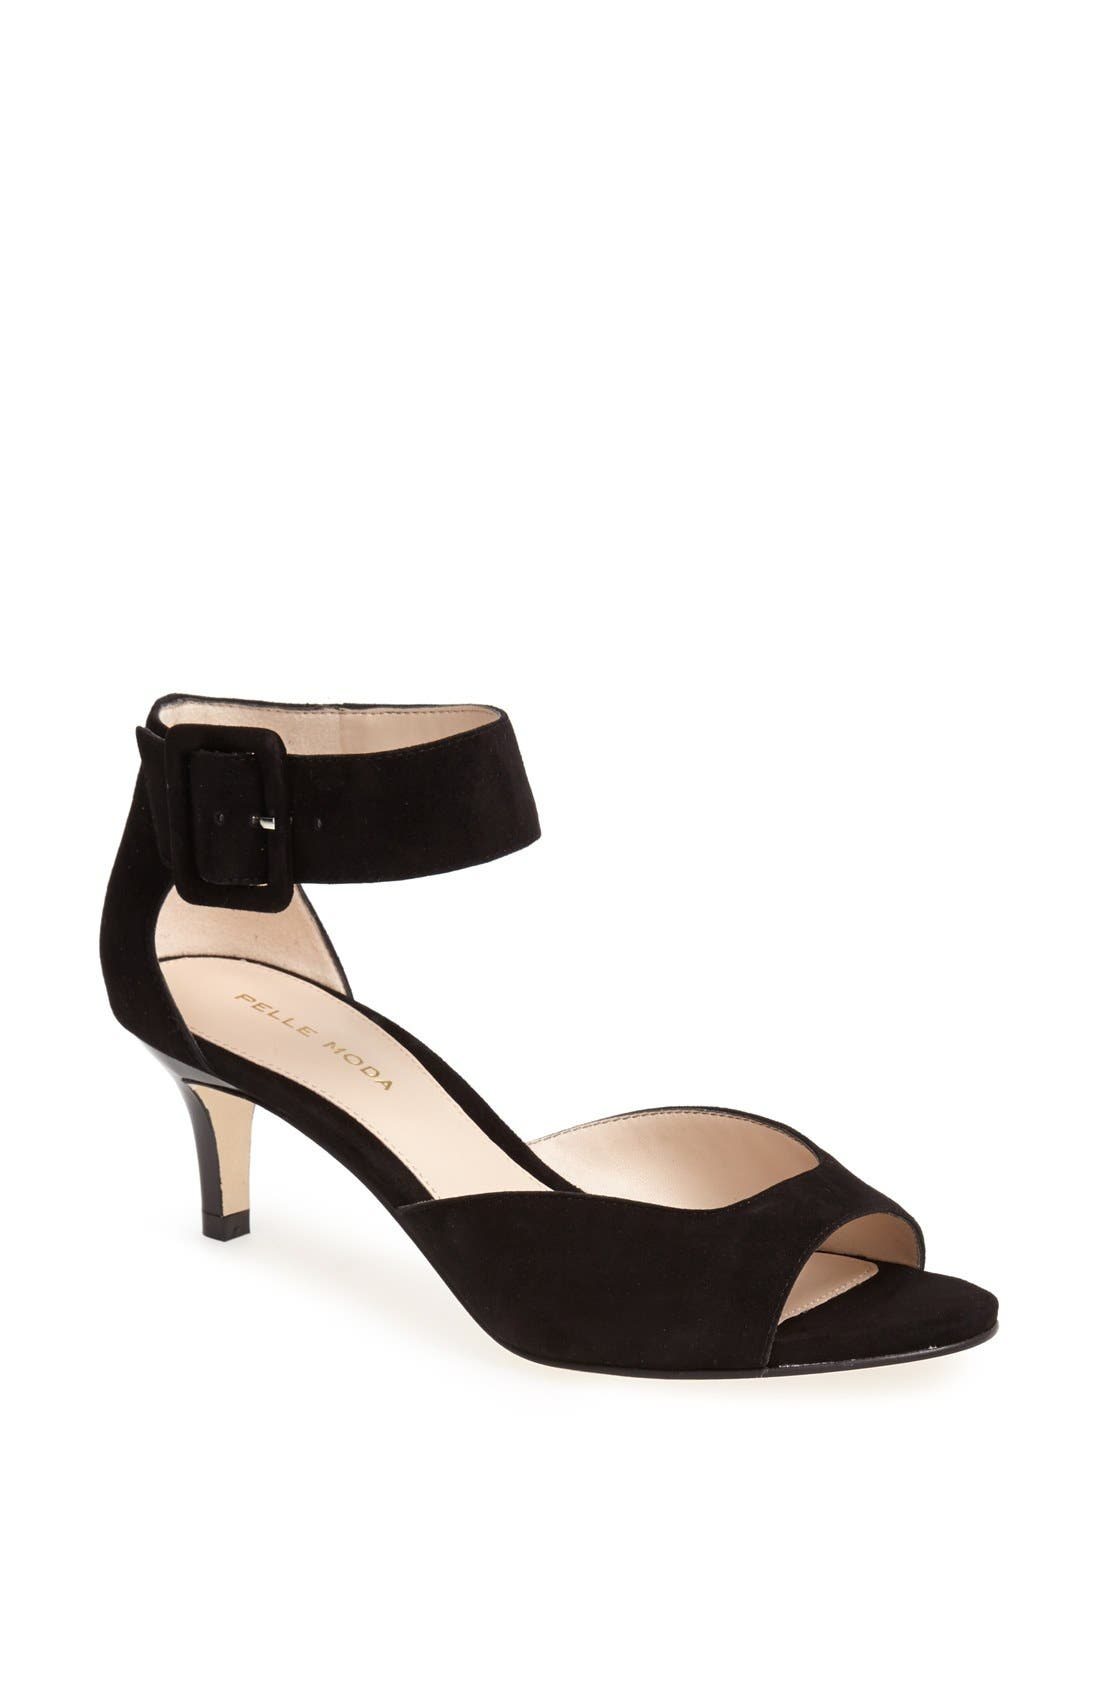 Caressably soft leather composes an elegant dress sandal with an alluring oversized buckle. Style Name: Pelle Moda \\\'Berlin\\\' Sandal (Women). Style Number: 477517. Available in stores.